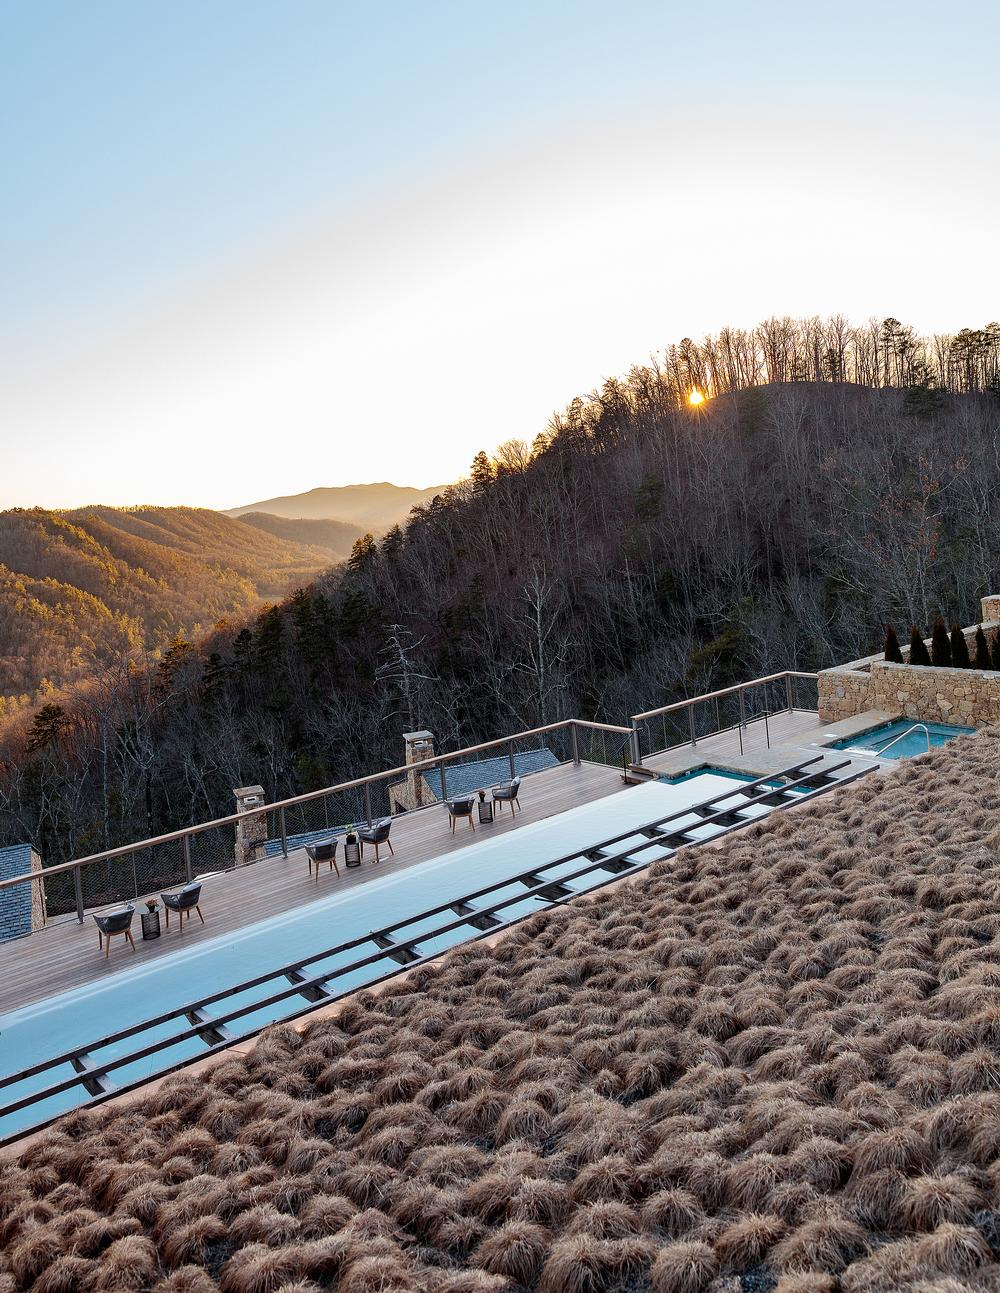 The resort has been designed to blend into the landscape / Photo: Ingalls Photography